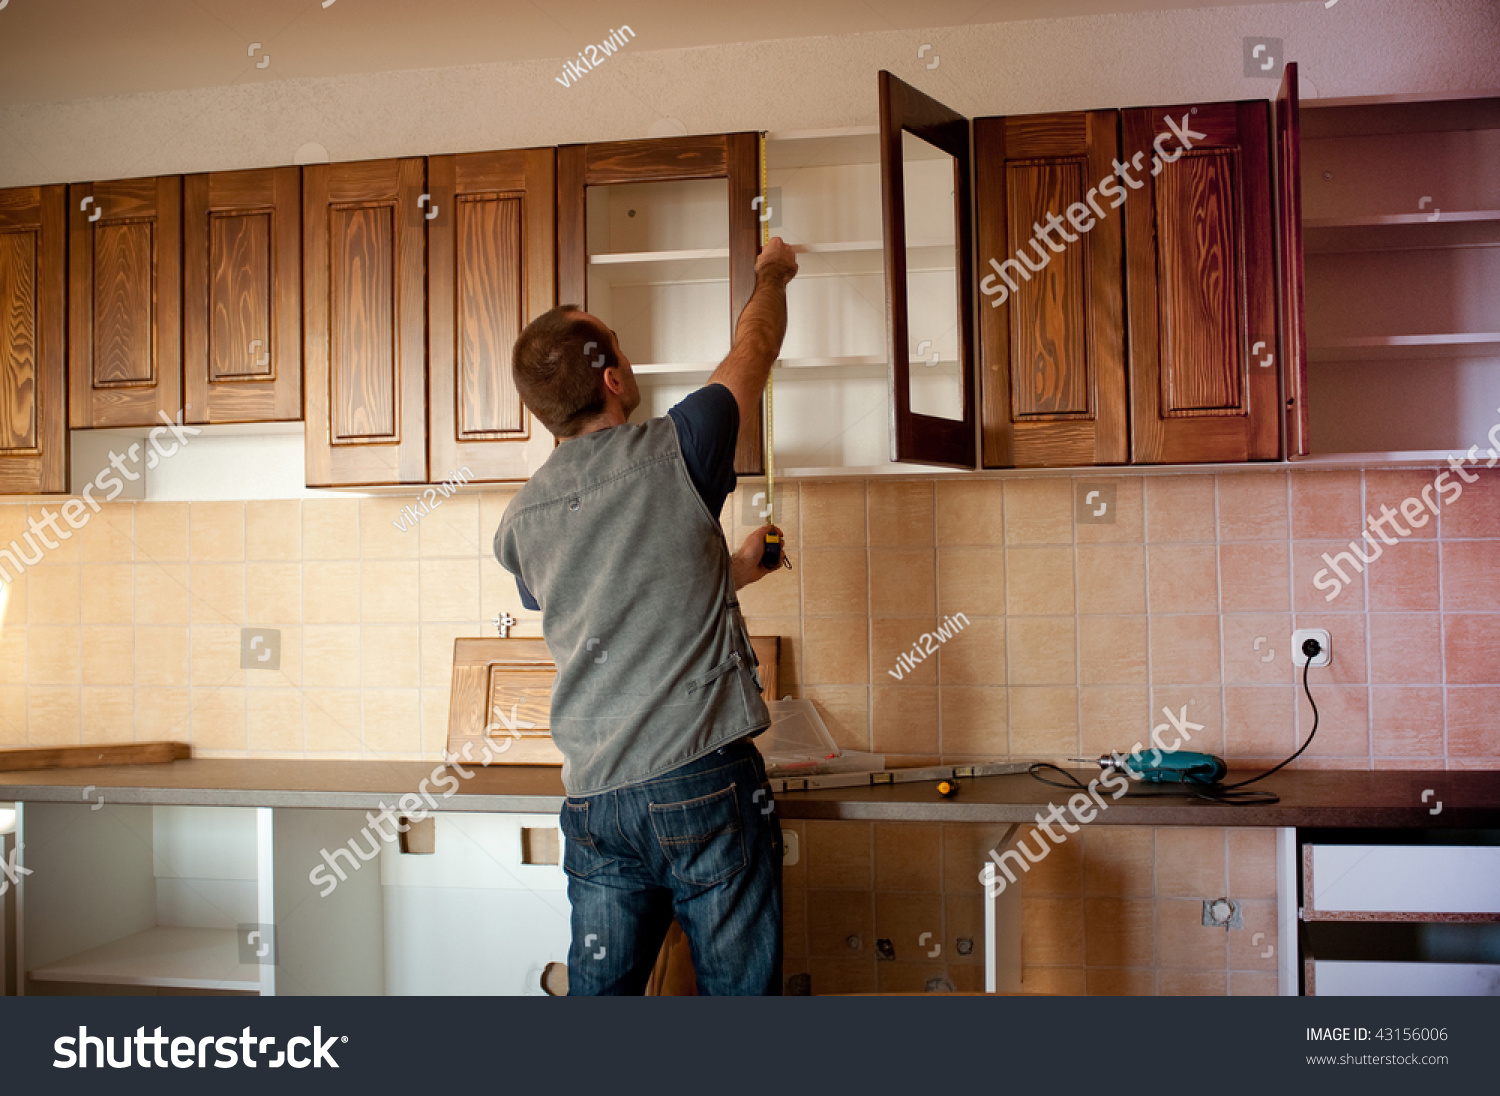 stock photo carpenter working on new kitchen cabinets new kitchen cabinets Carpenter working on new kitchen cabinets